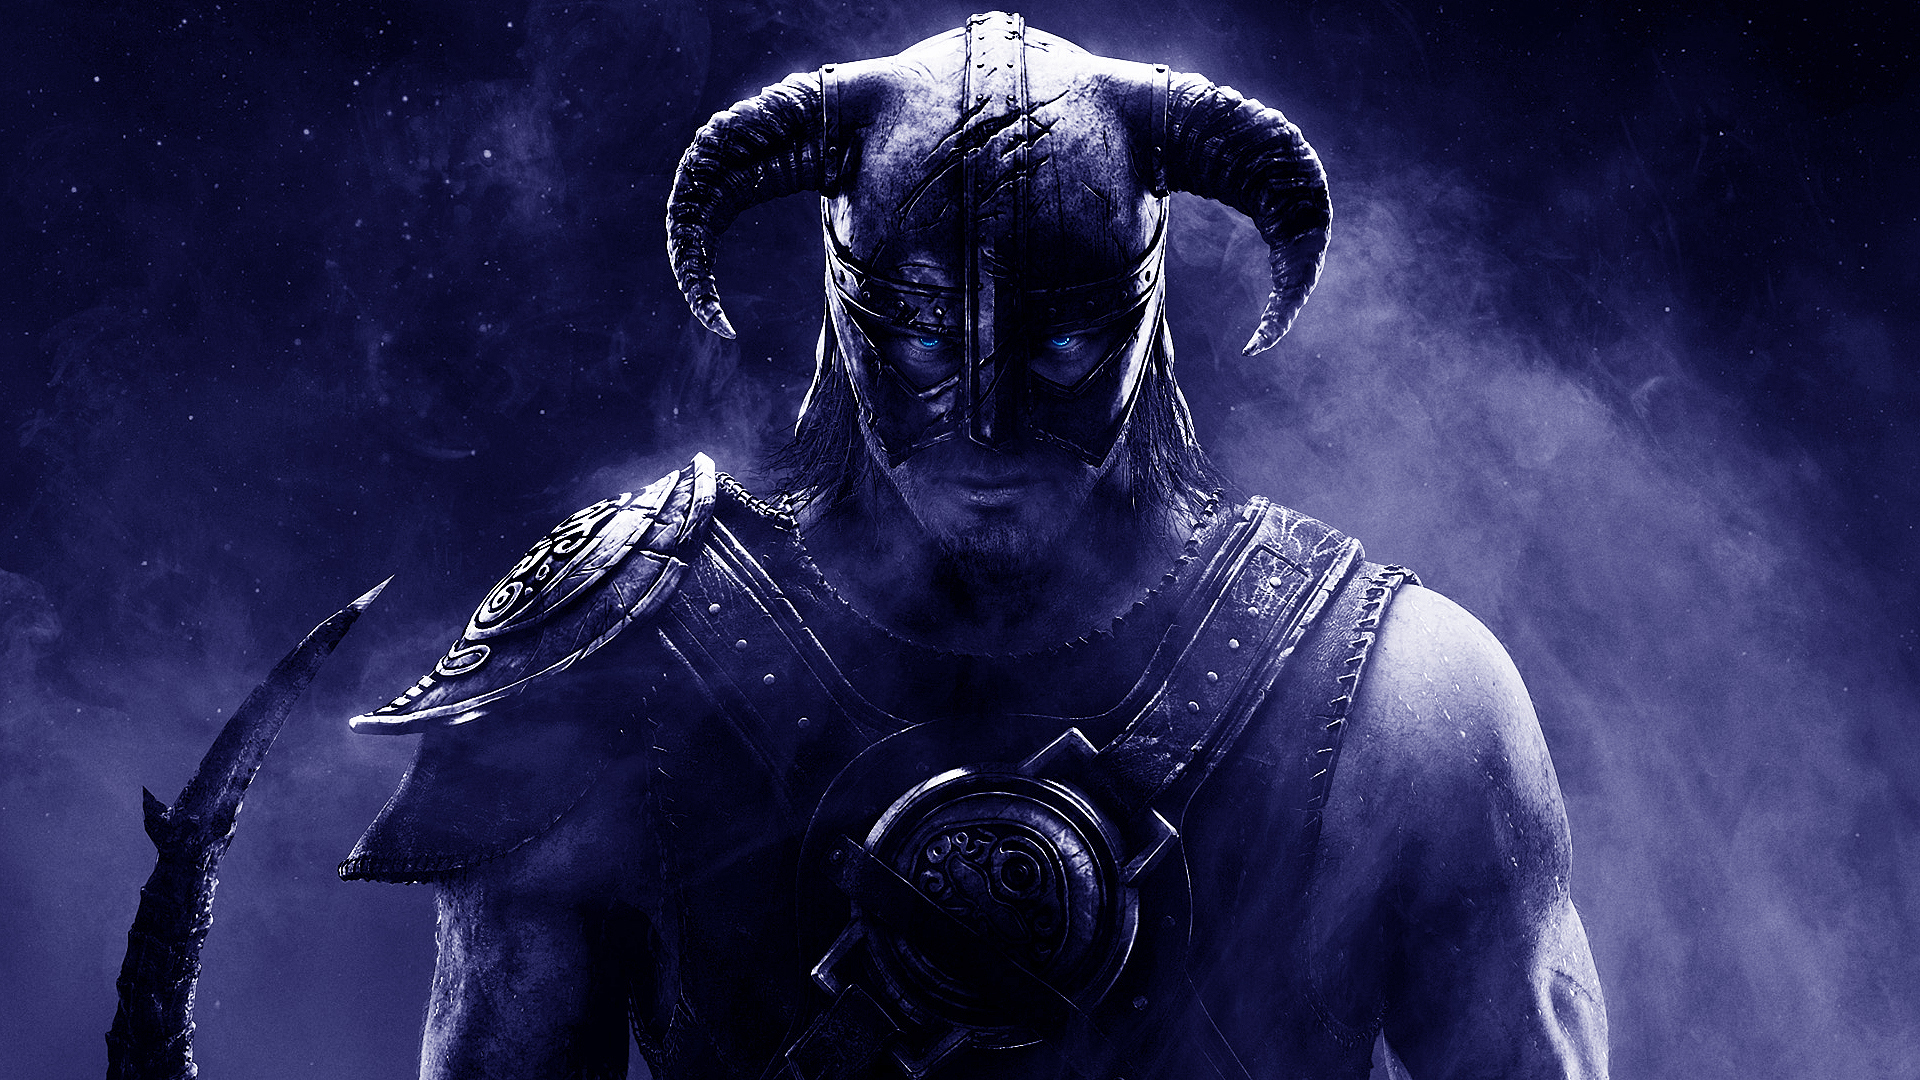 Wallpaper The Elder Scrolls V: Skyrim warrior wearing a helmet